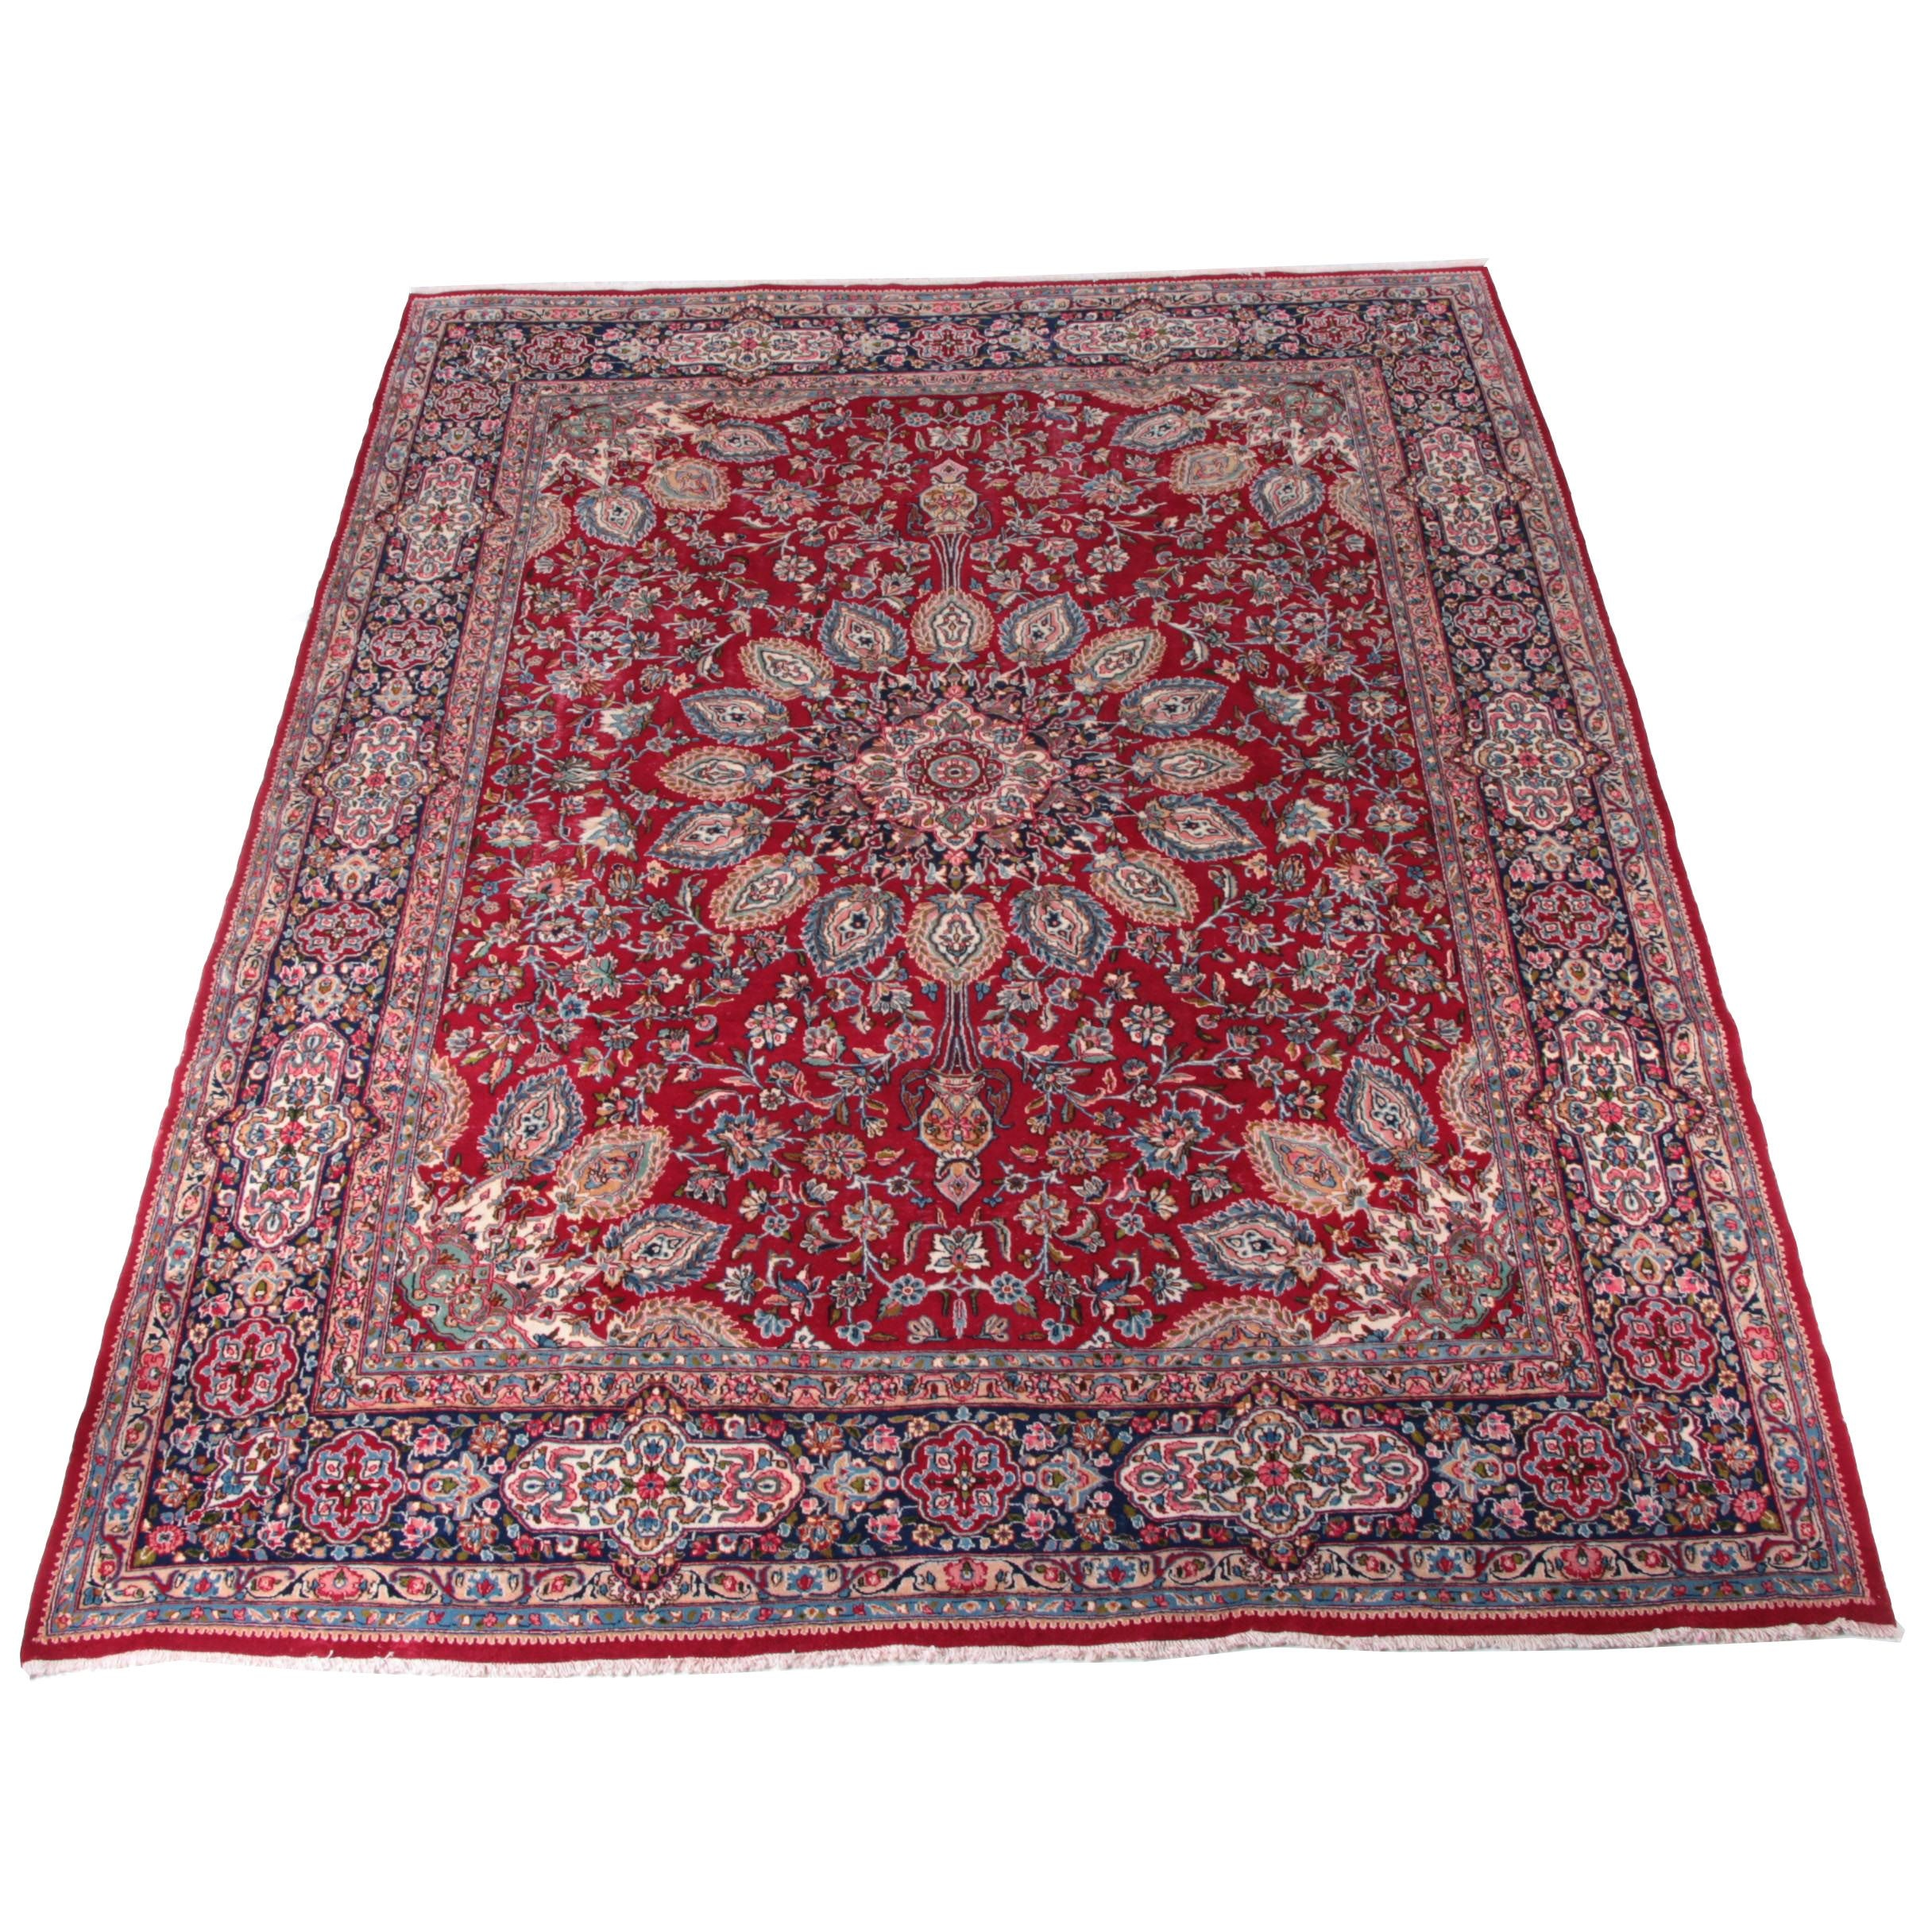 Finely Hand-Knotted Persian Kerman Wool Area Rug by Khazai